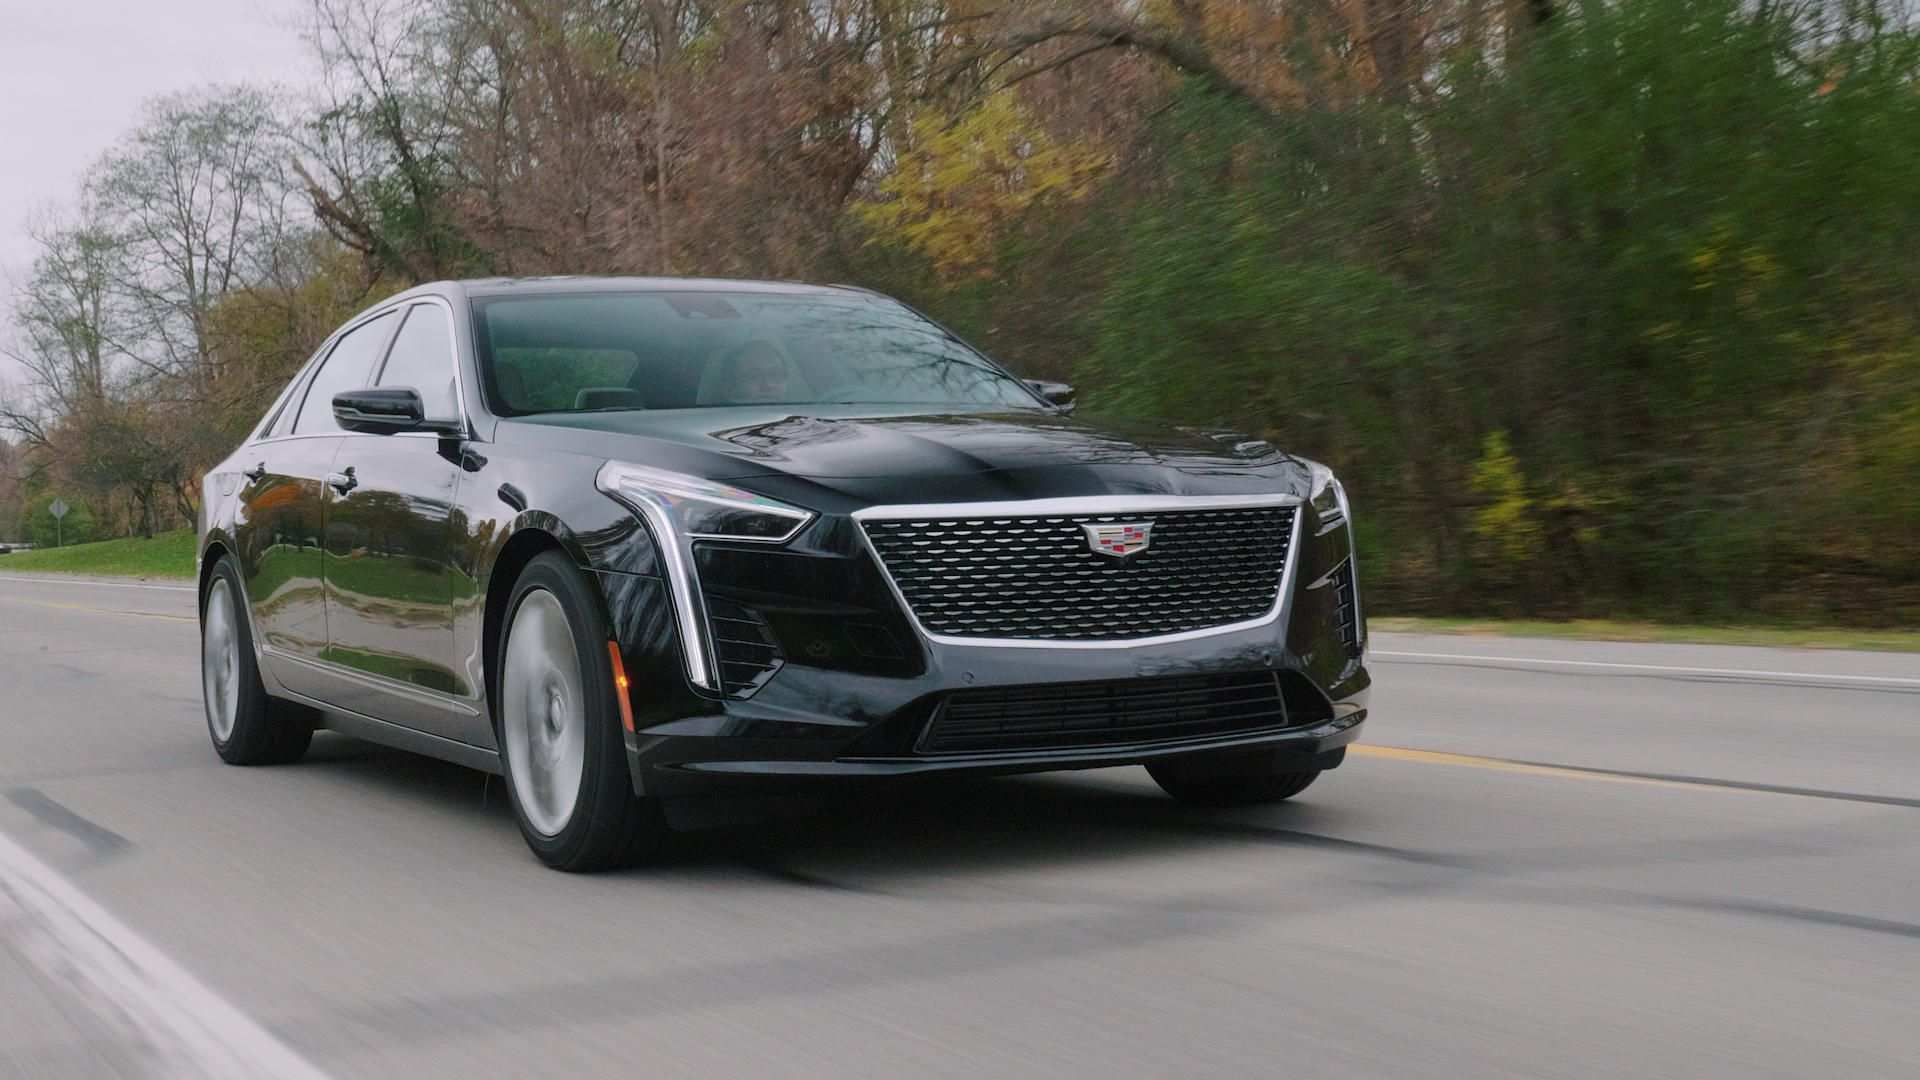 89 A 2019 Cadillac CT6 Wallpaper